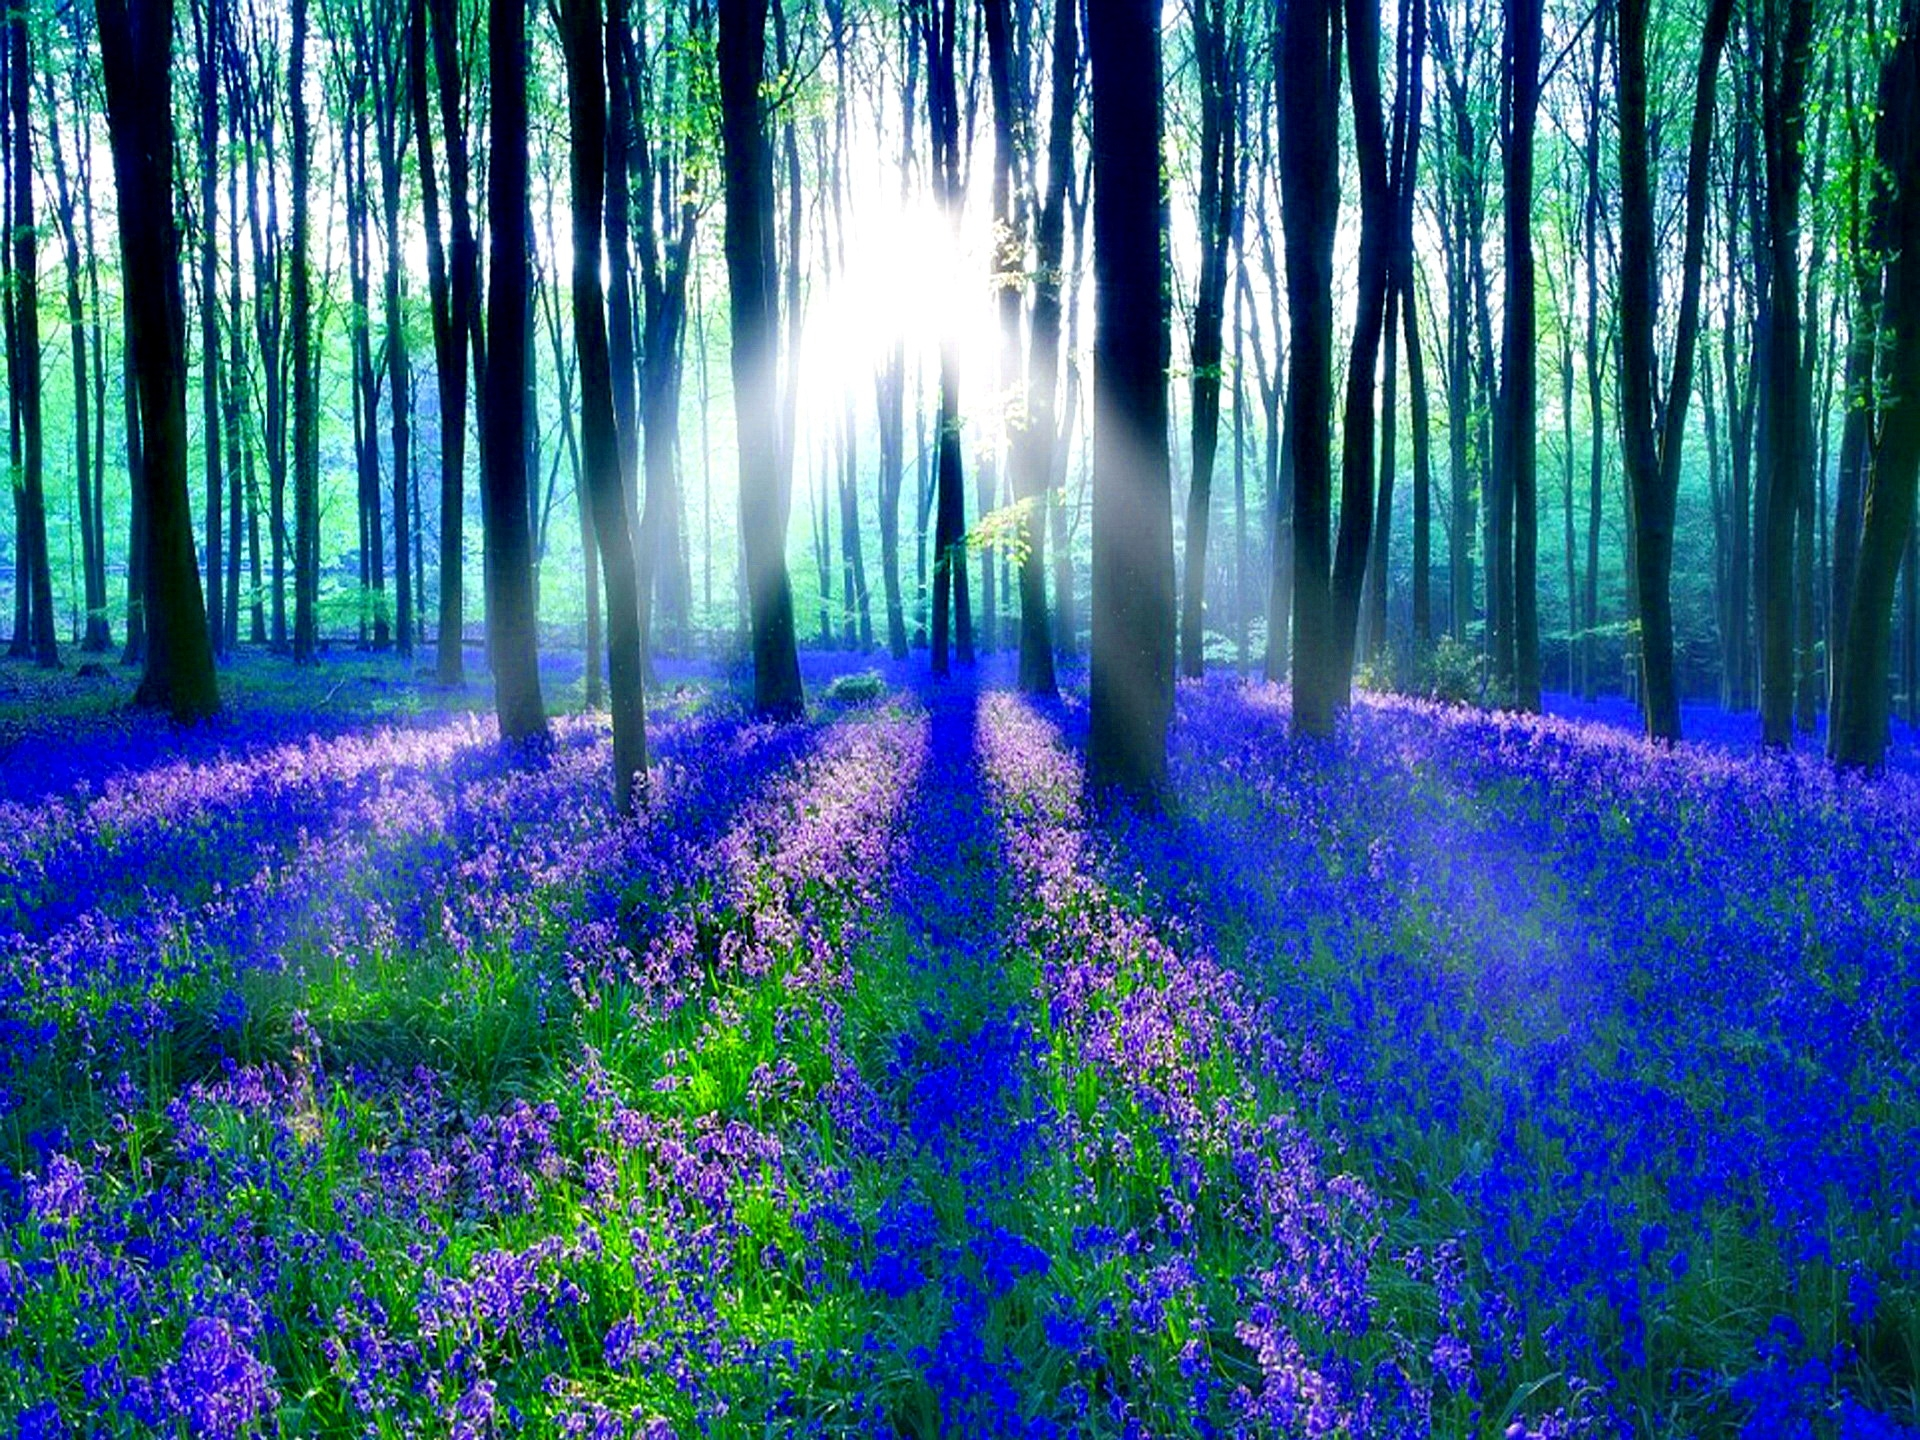 bluebell high definition wallpapers